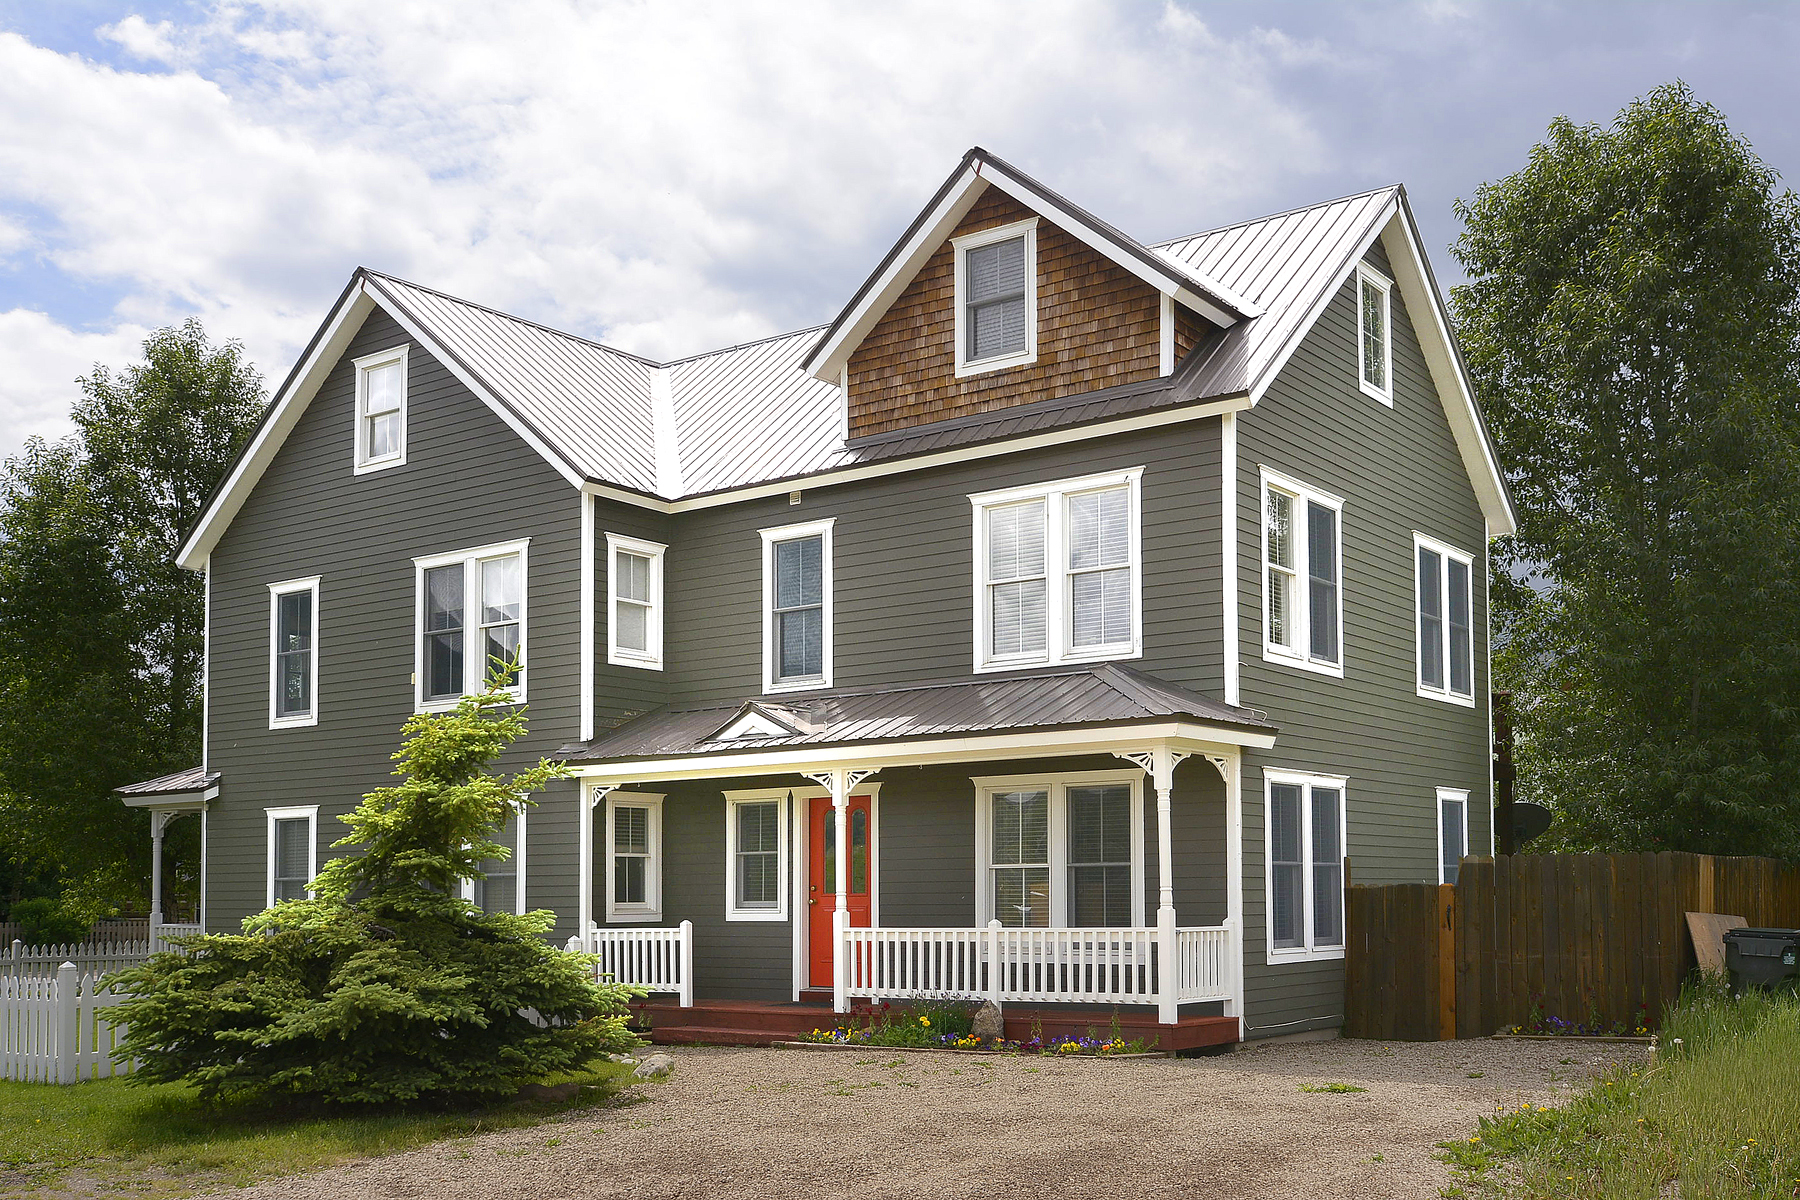 Single Family Home for Sale at Exquisite Townhome 1 Seventh Street Unit B Crested Butte, Colorado 81224 United States